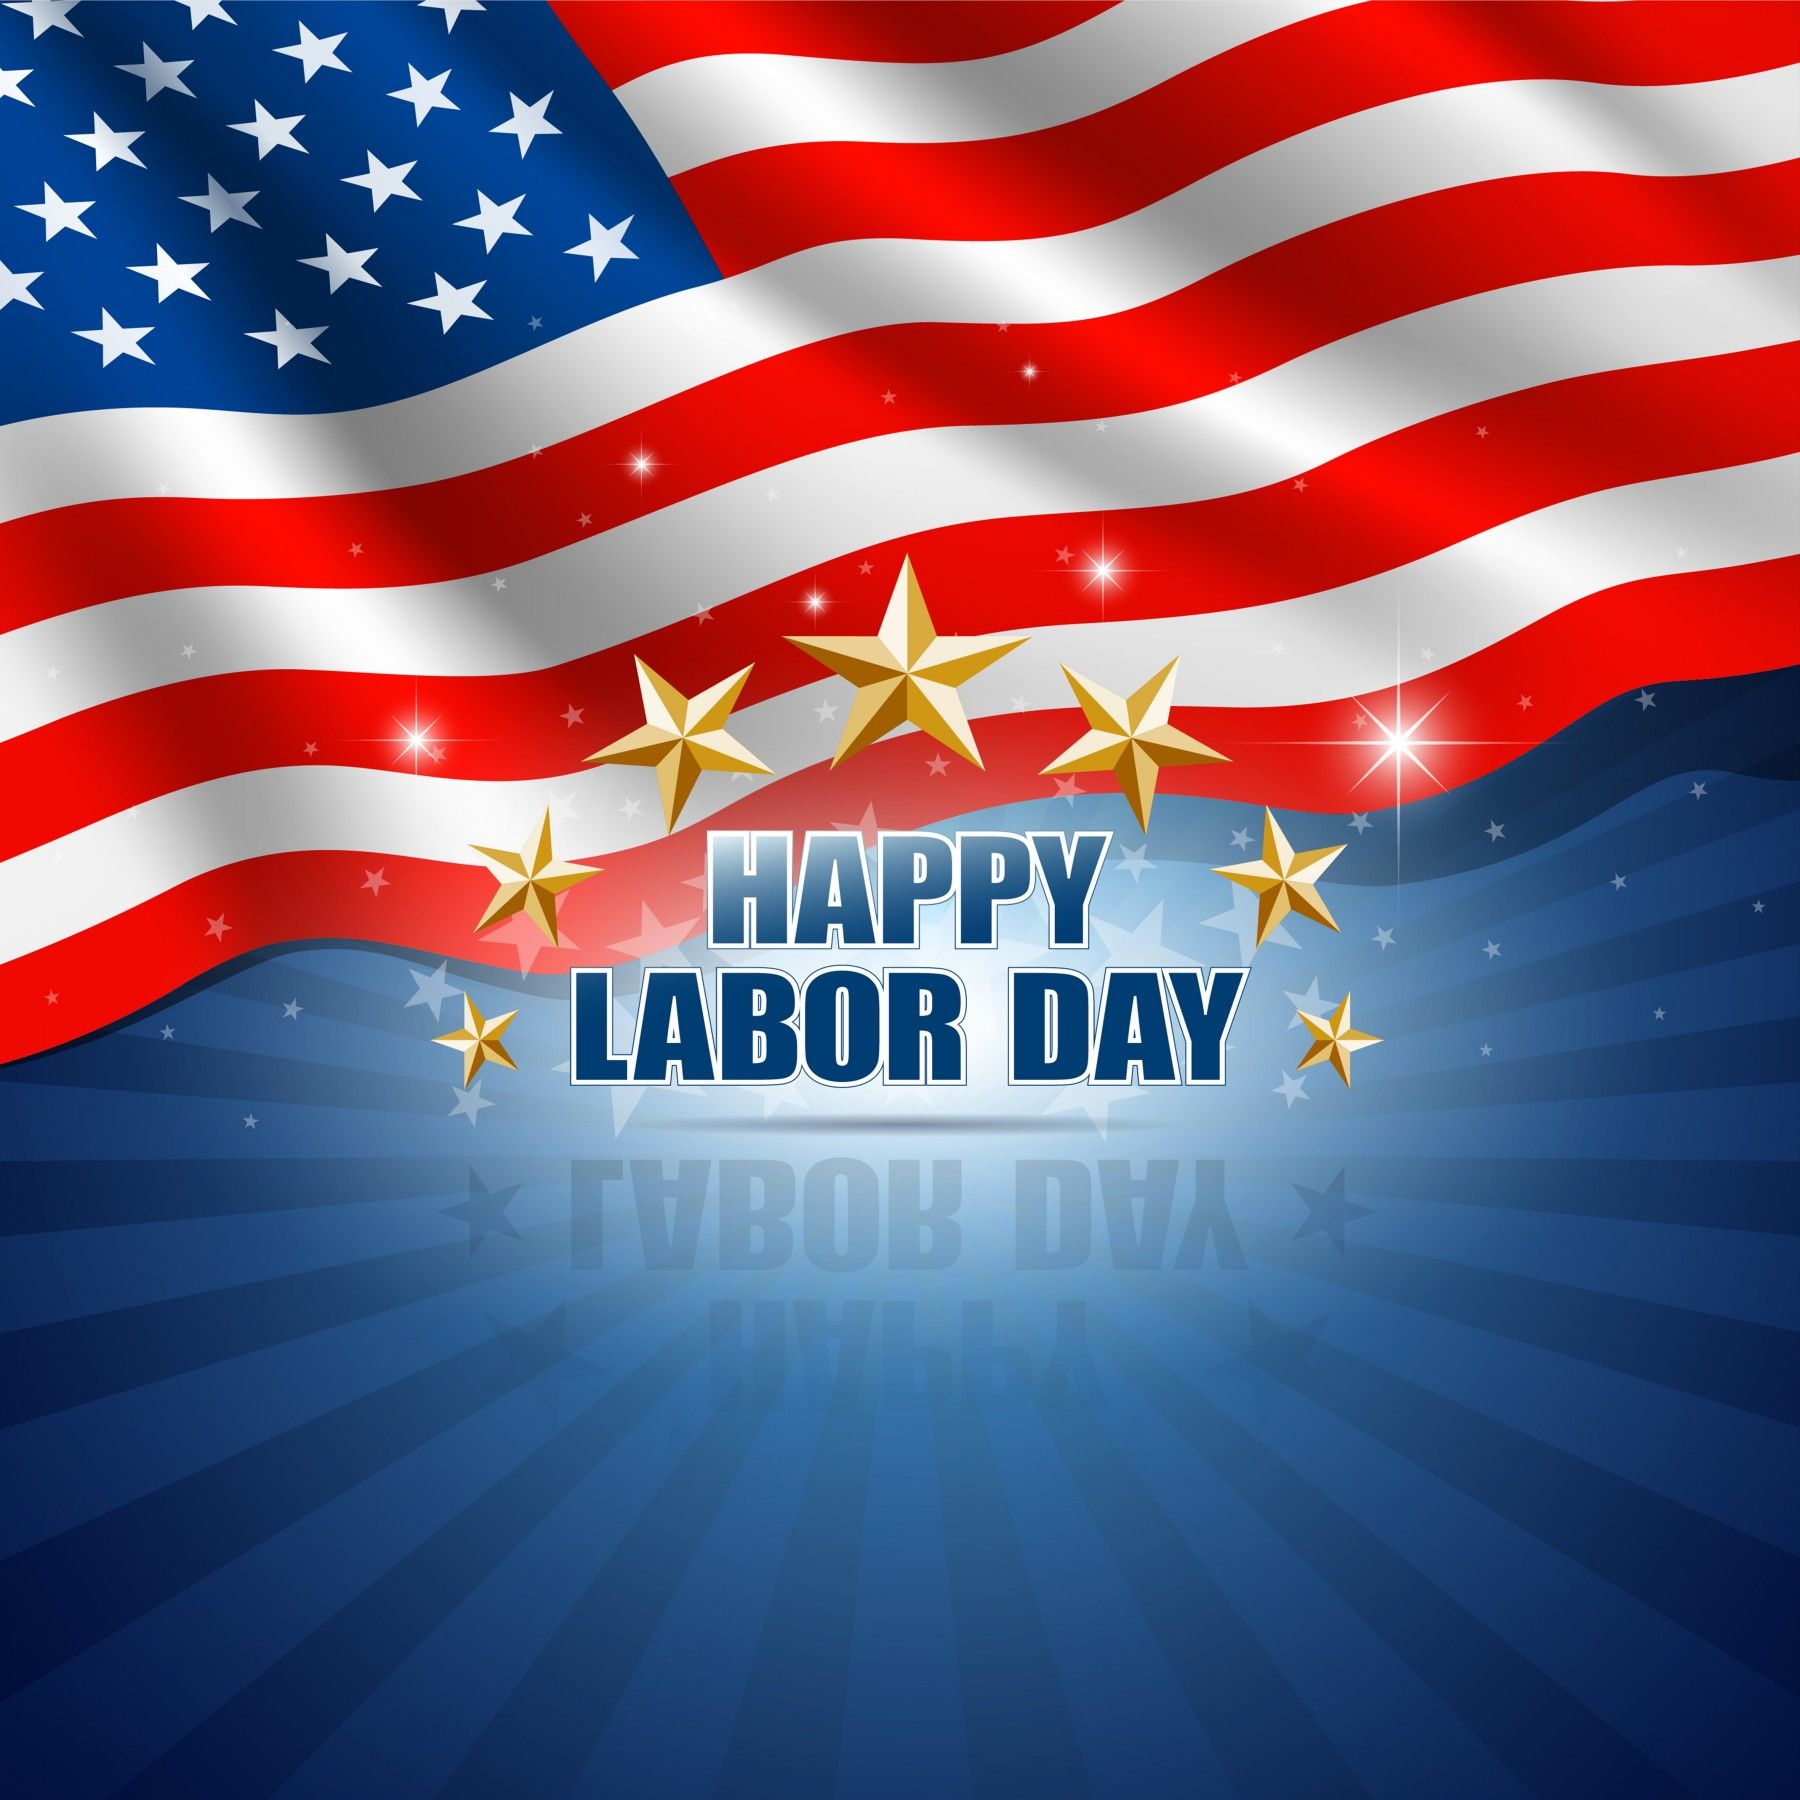 Happy Labor Day - From your friends at Danbury Church of Christ